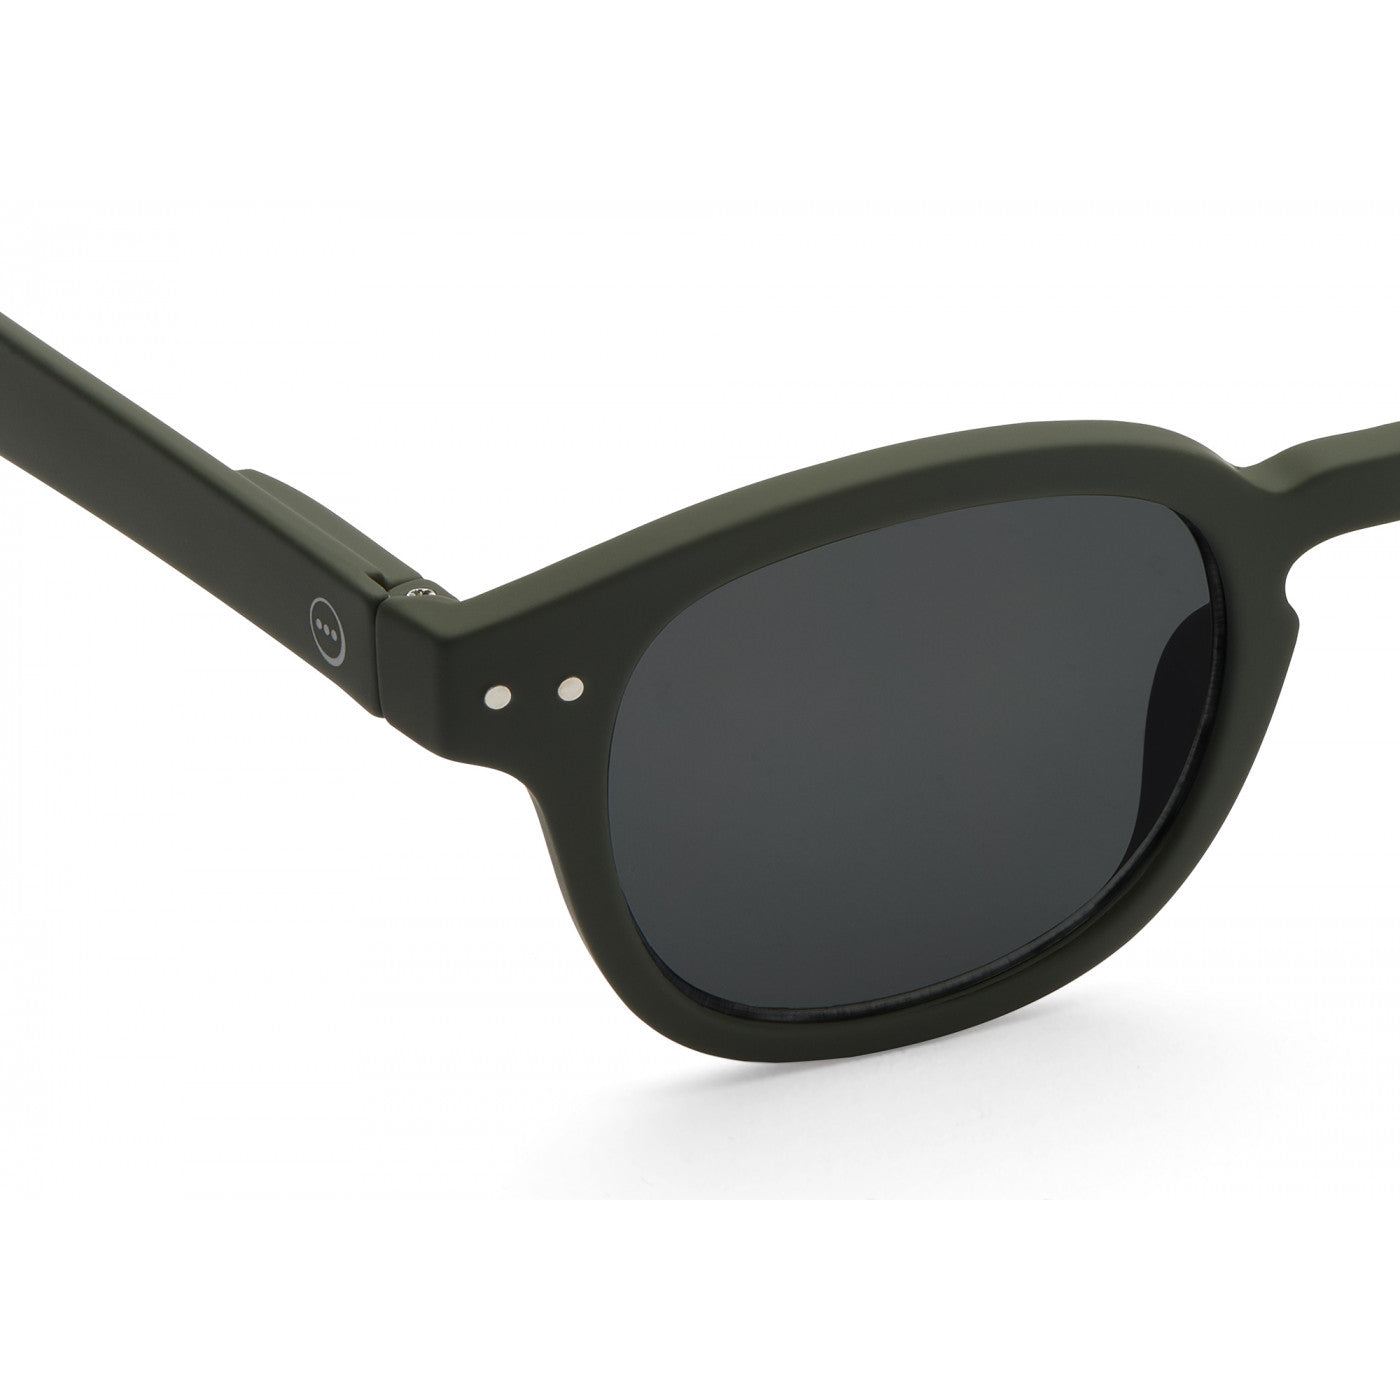 Sunglasses  - #C Shape Khaki Green Frame